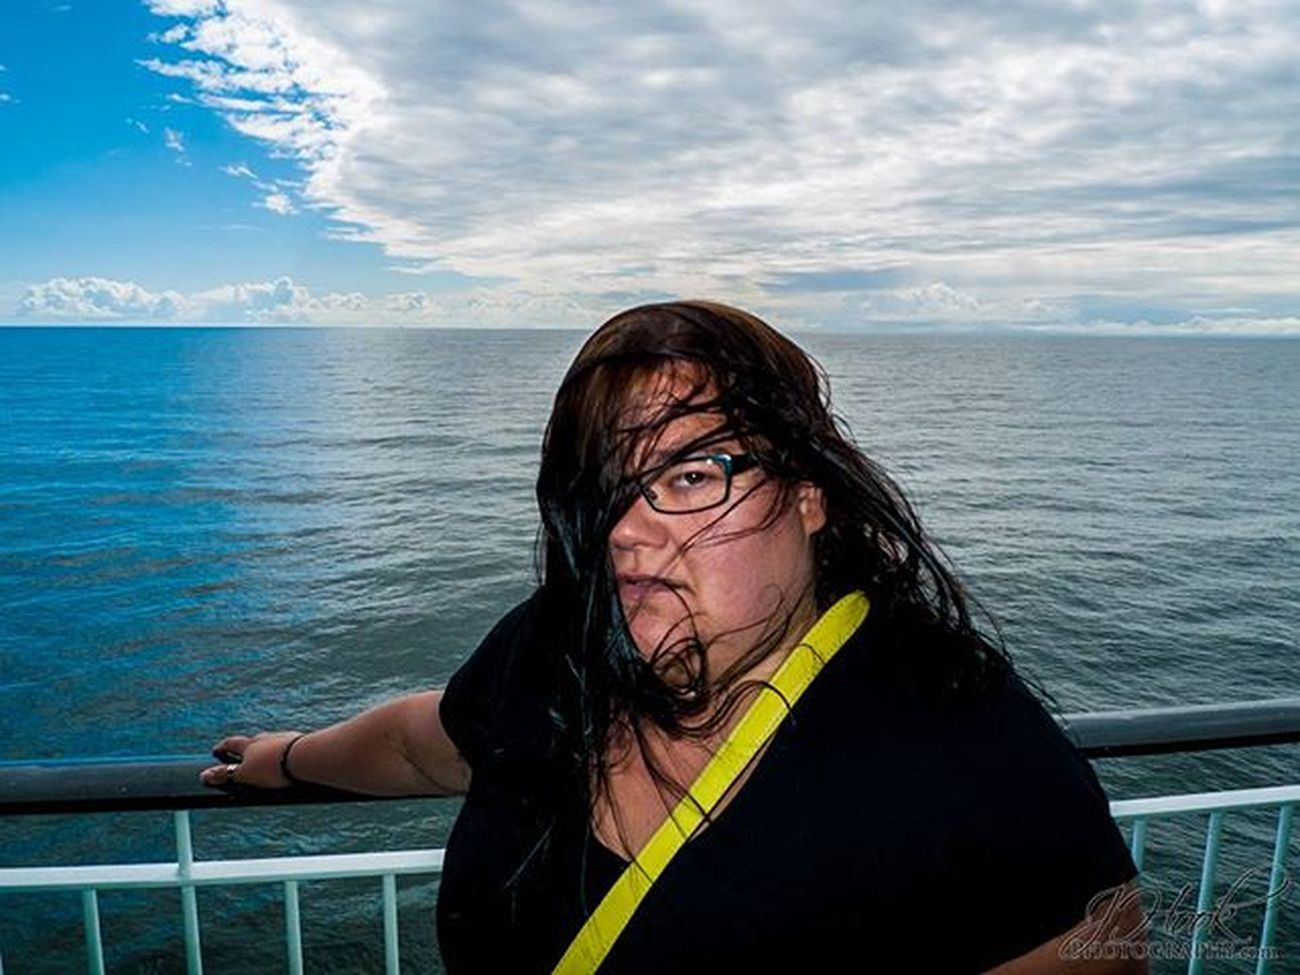 A Somewhat Pissed off Model on a Cruise Boat a couple months ago. Pissed off at the Wind not me.. A Realistic Capture of a completely Normal situation. The model in this photo is my better half for 10 years. Malli Laivalla Vituttaa Tuulee